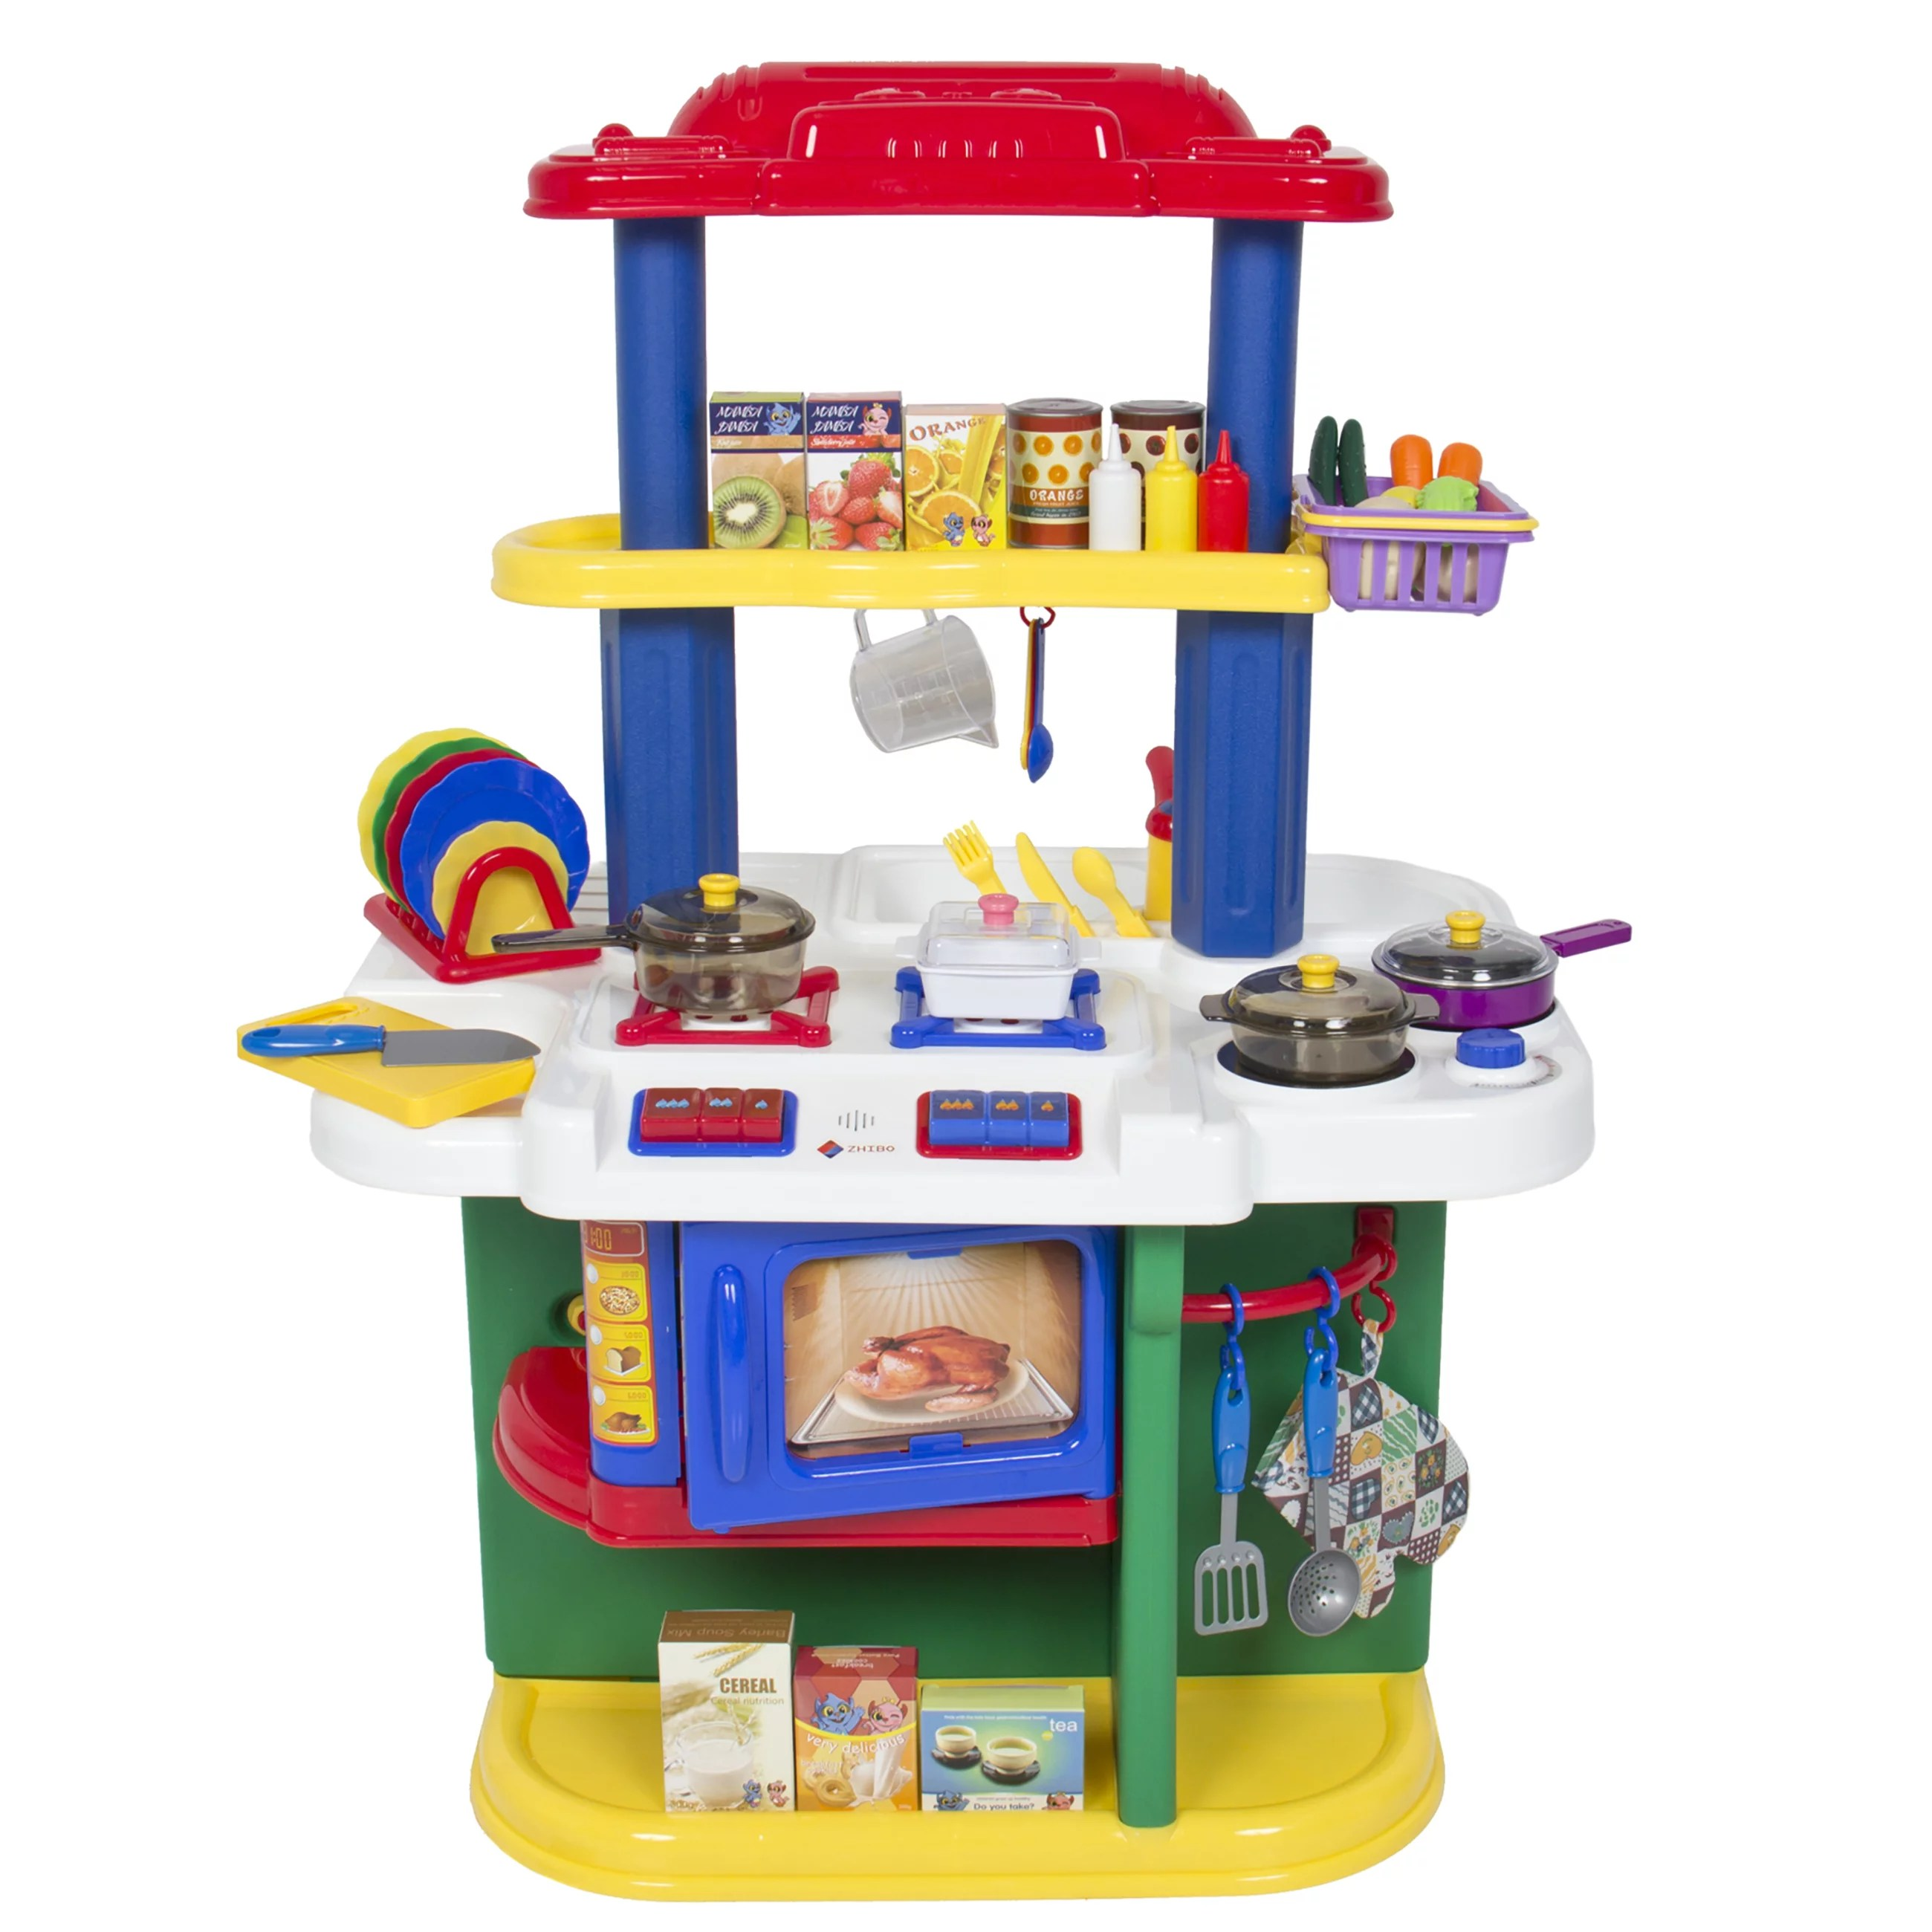 toy kitchen sets custom wood hoods deluxe children cooking pretend play set with accessories walmart com